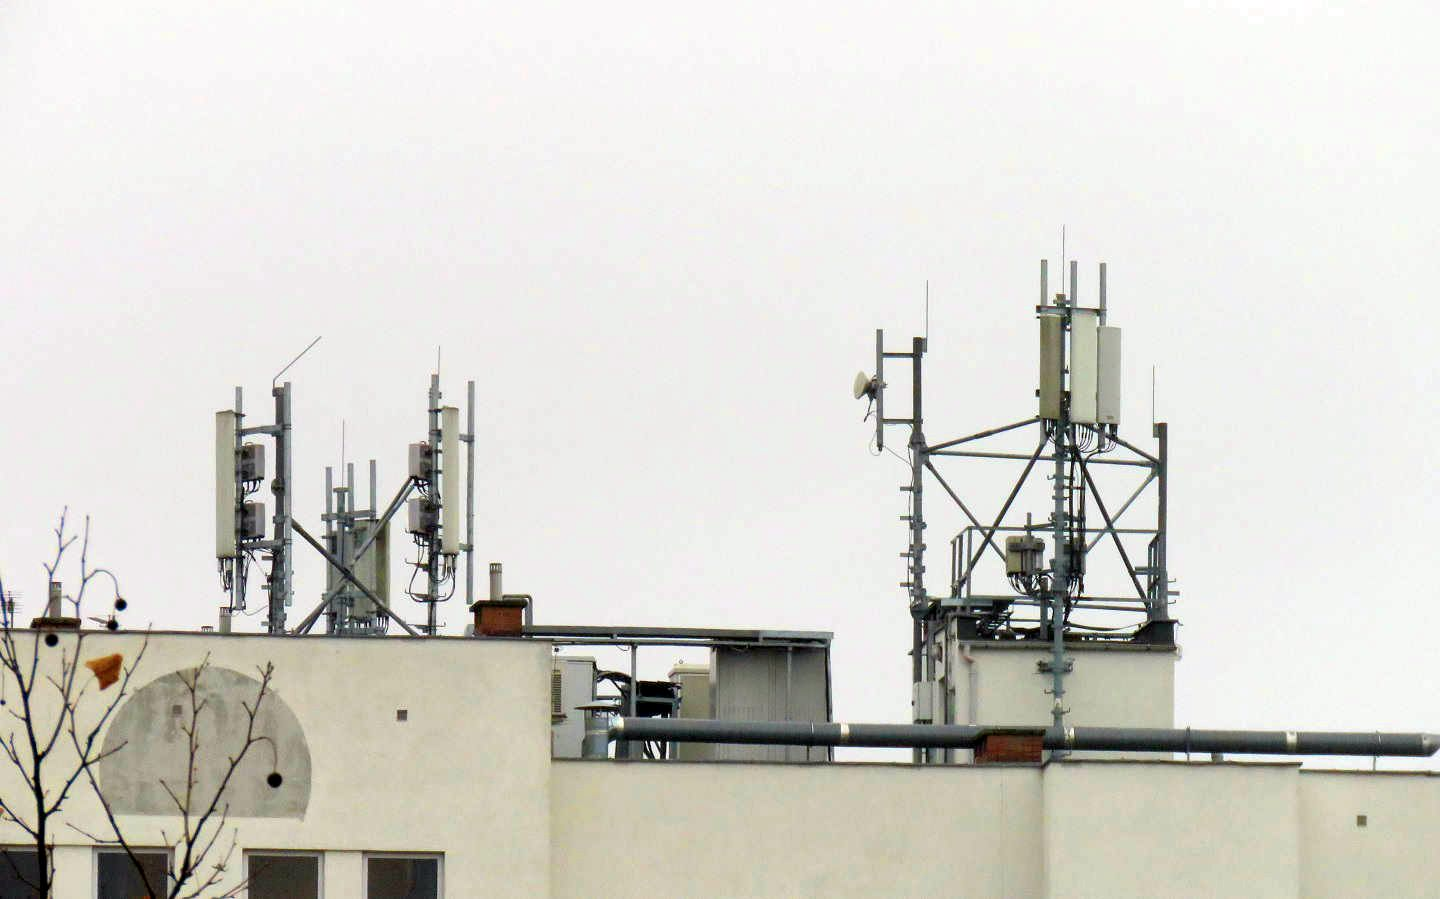 Multi-Operator Rooftop site with T-Mobile, Orange and Plus.